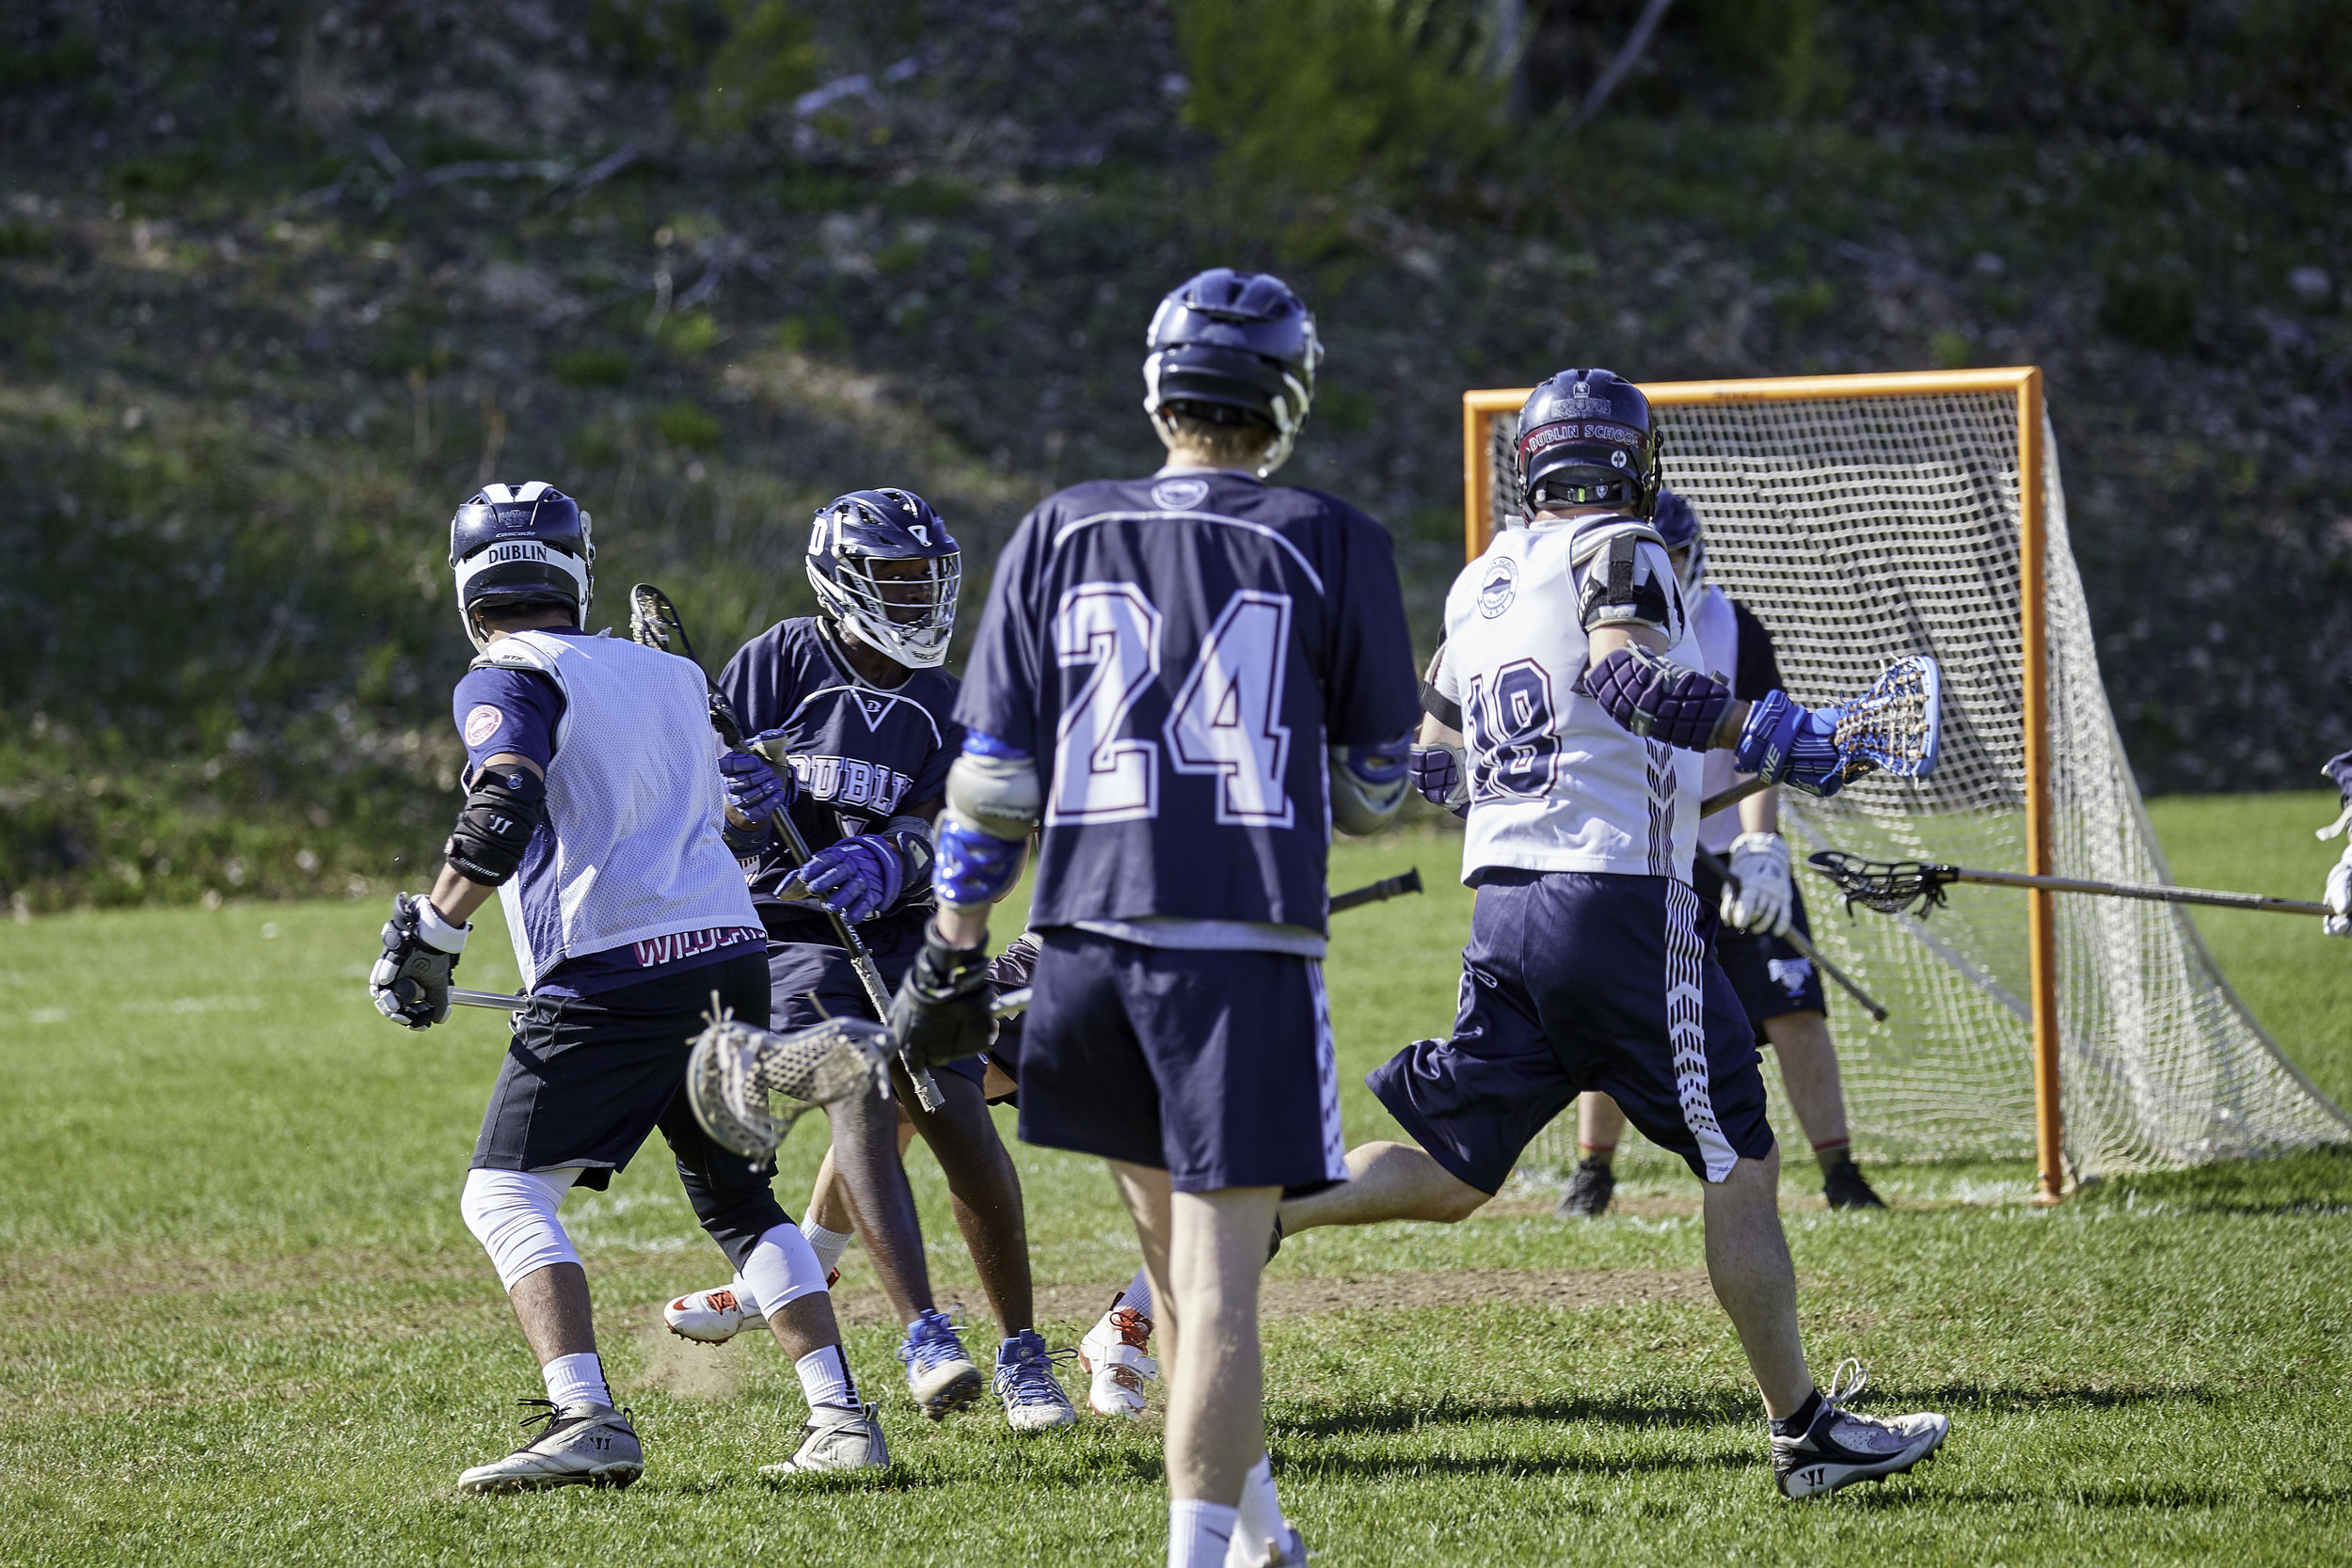 Mike Walter Alumni Game - May 18 2019 - 0236.jpg